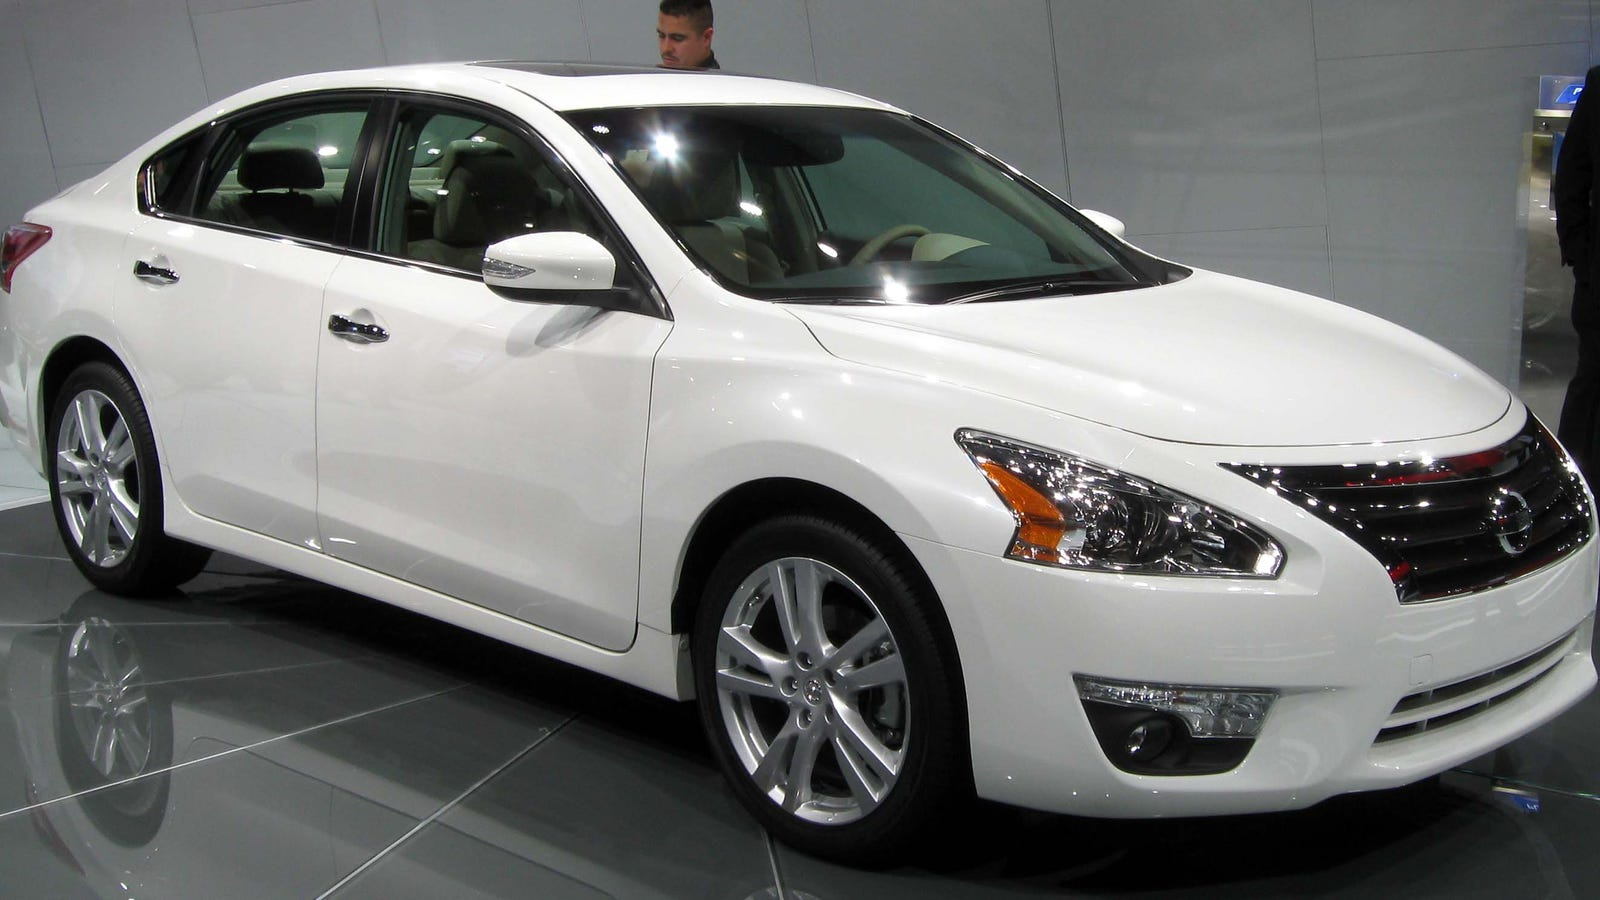 The Nissan Altima is the Most Popular CarMax Vehicle